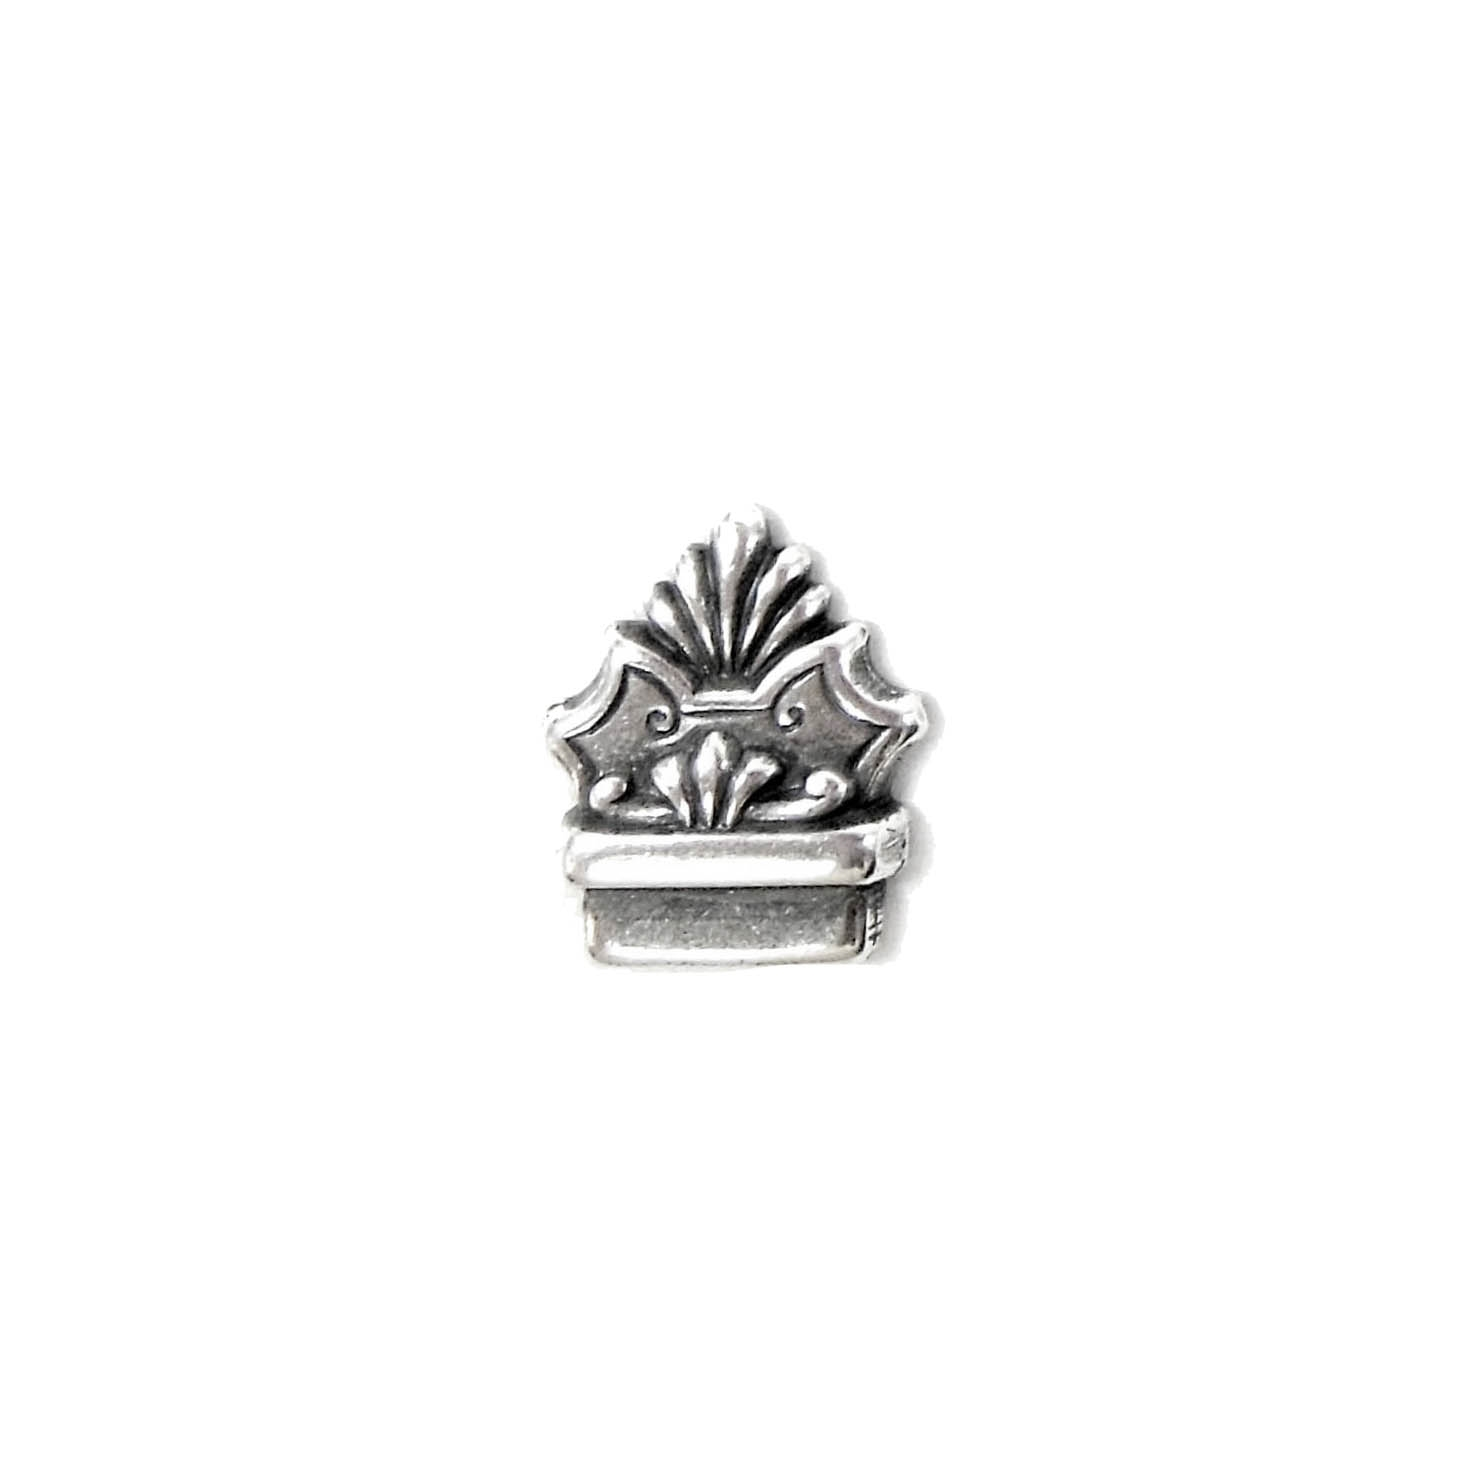 victorian stamping, antique silver, 15 x 13mm, 03905